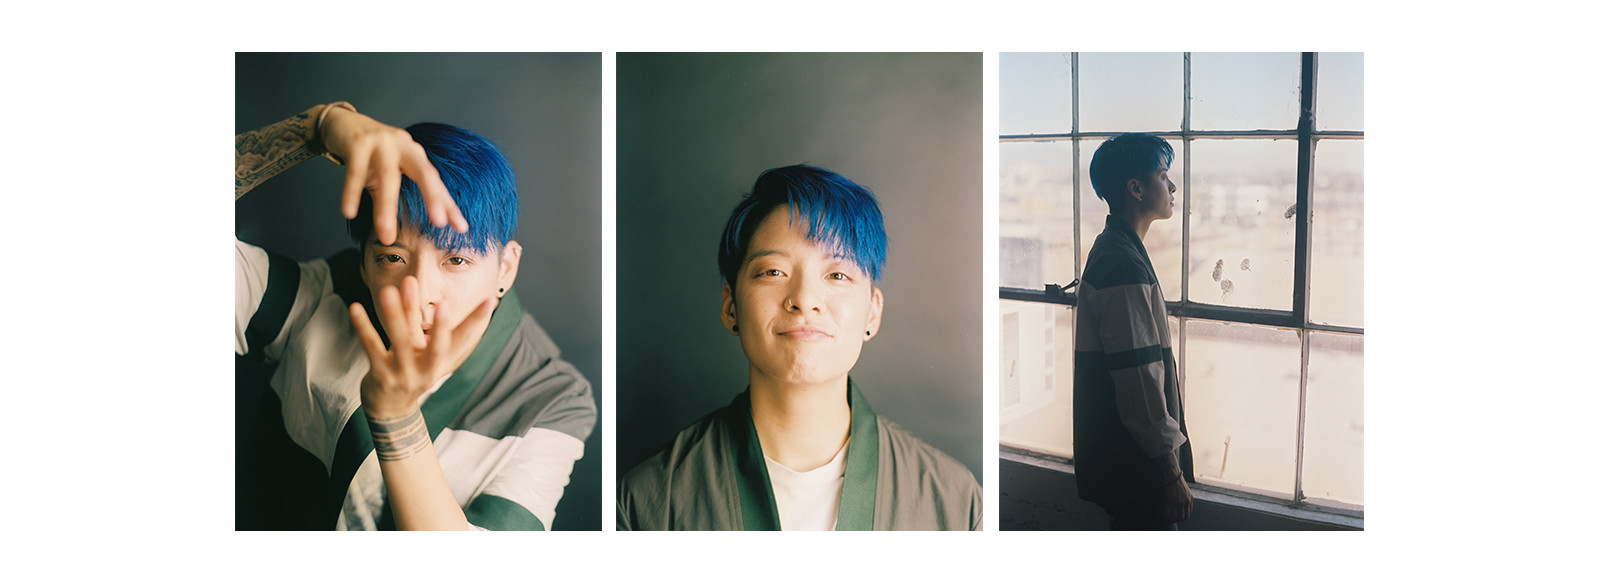 Amber Liu f(x) Rogue Rouge K-Pop Star Gone Tour Interview Video Solo Portrait Blue Hair Korean Pop Music